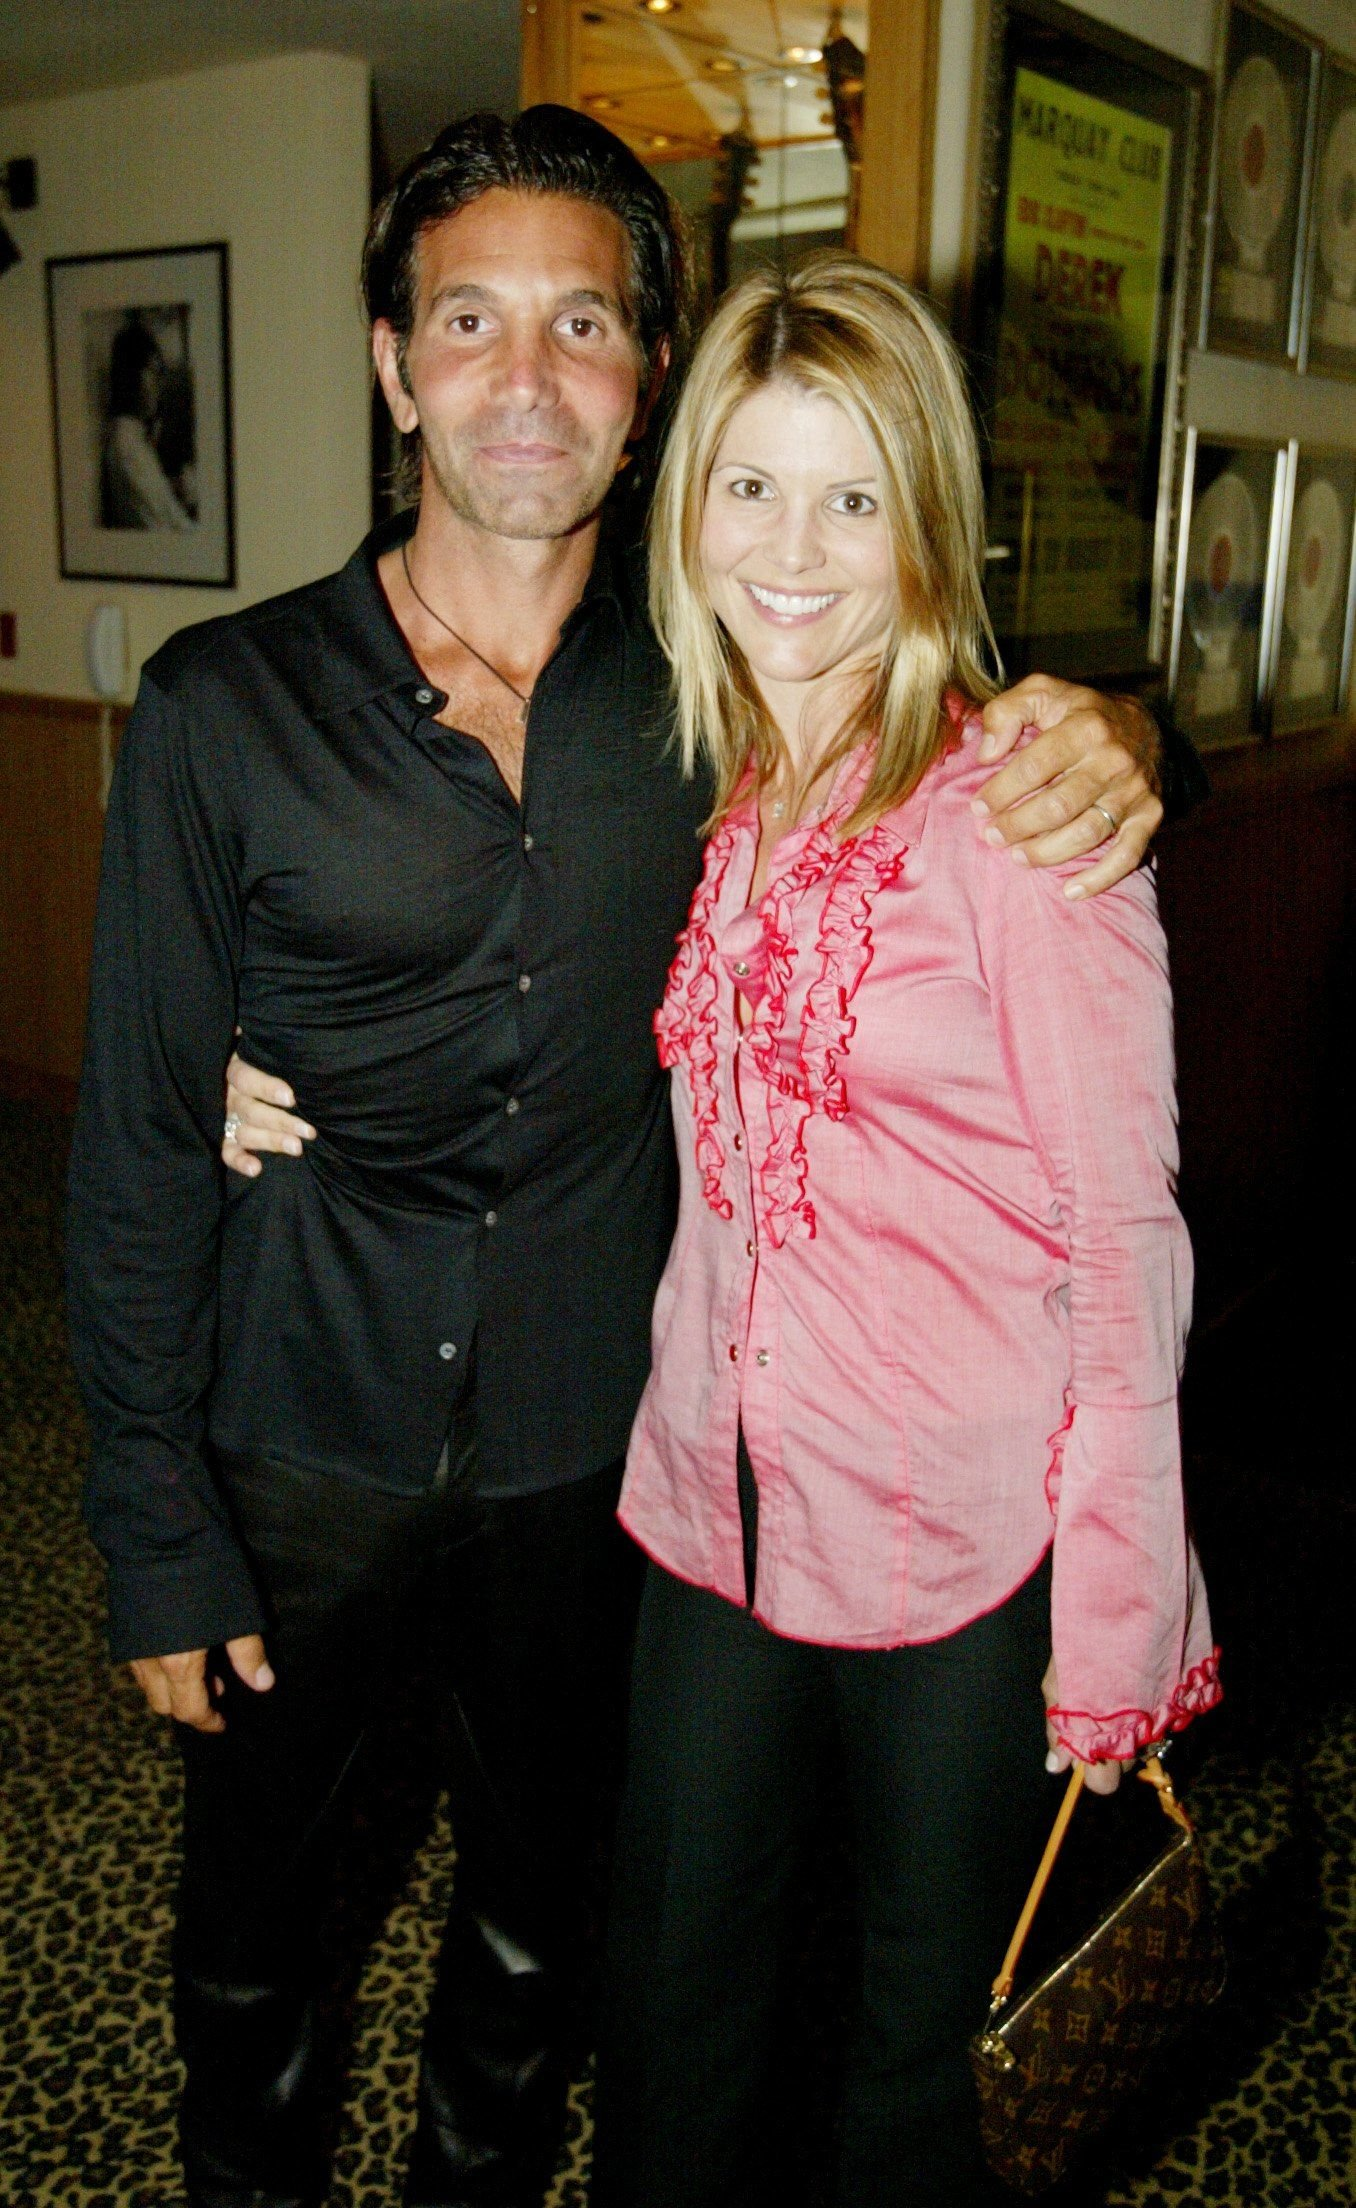 Actress Lori Laughlin and her husband Mossimo Giannulli at an Oasis concert at The Joint inside the Hard Rock Hotel & Casino April 26, 2002 | Photo: Getty Images